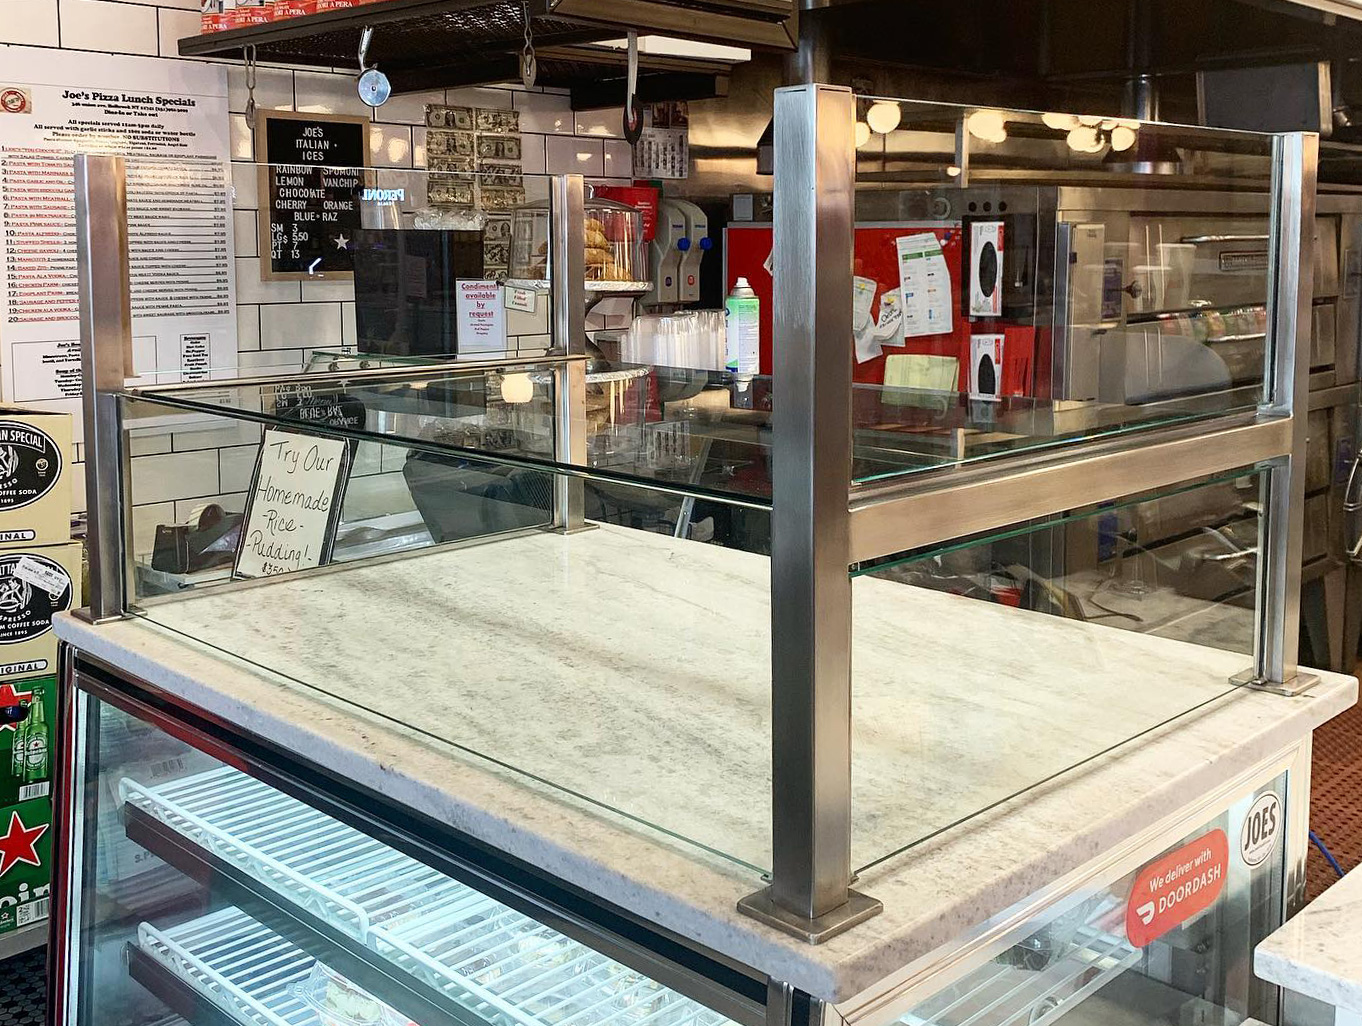 Stainless Steel Food Shield | Joes Pizza & Pasta - Holbrook, NY